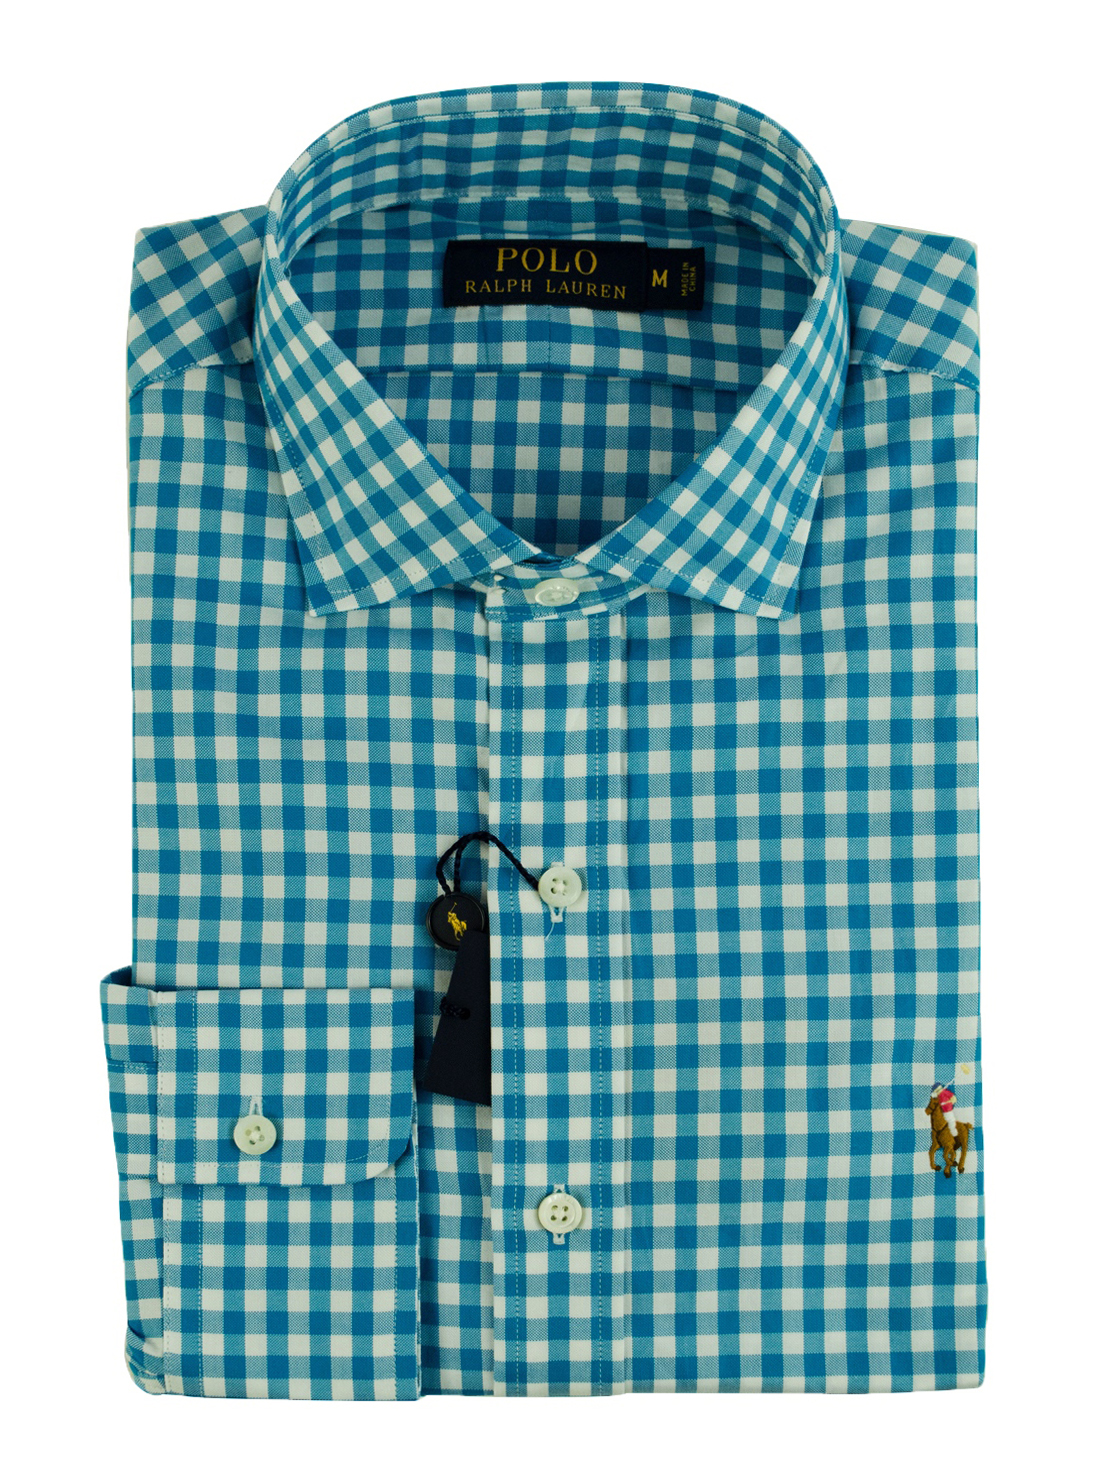 Polo Ralph Lauren Men's Gingham Long Sleeve Multicolored Pony Oxford Shirt